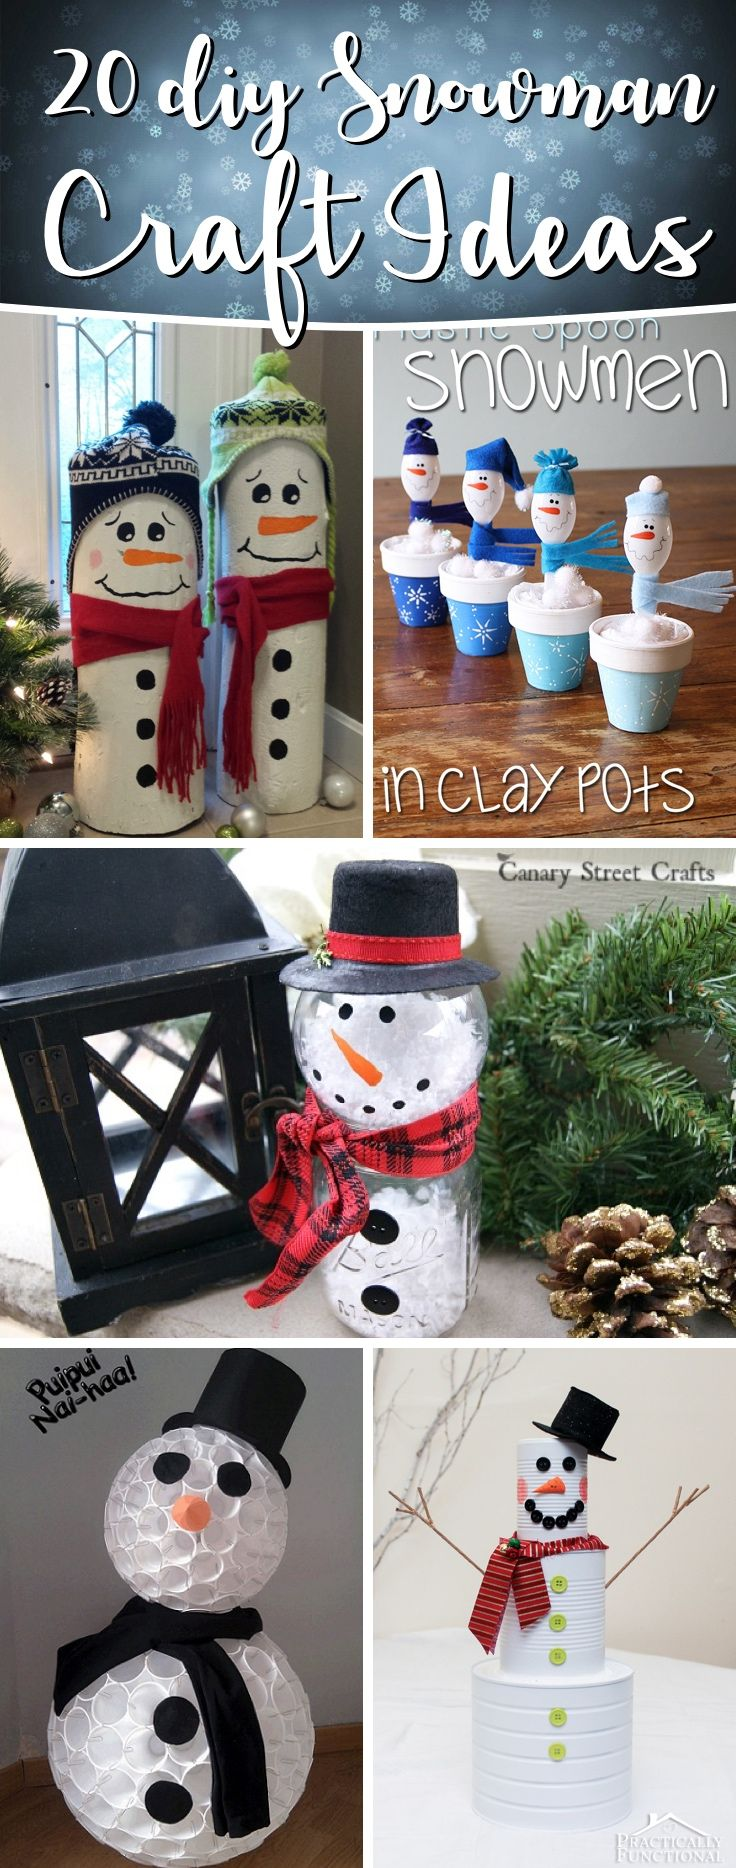 20 DIY Snowman Craft Ideas Making Christmas Even More Happiness-Worthy #snowman #holiday #christmas #diy #home #decor #homedecor